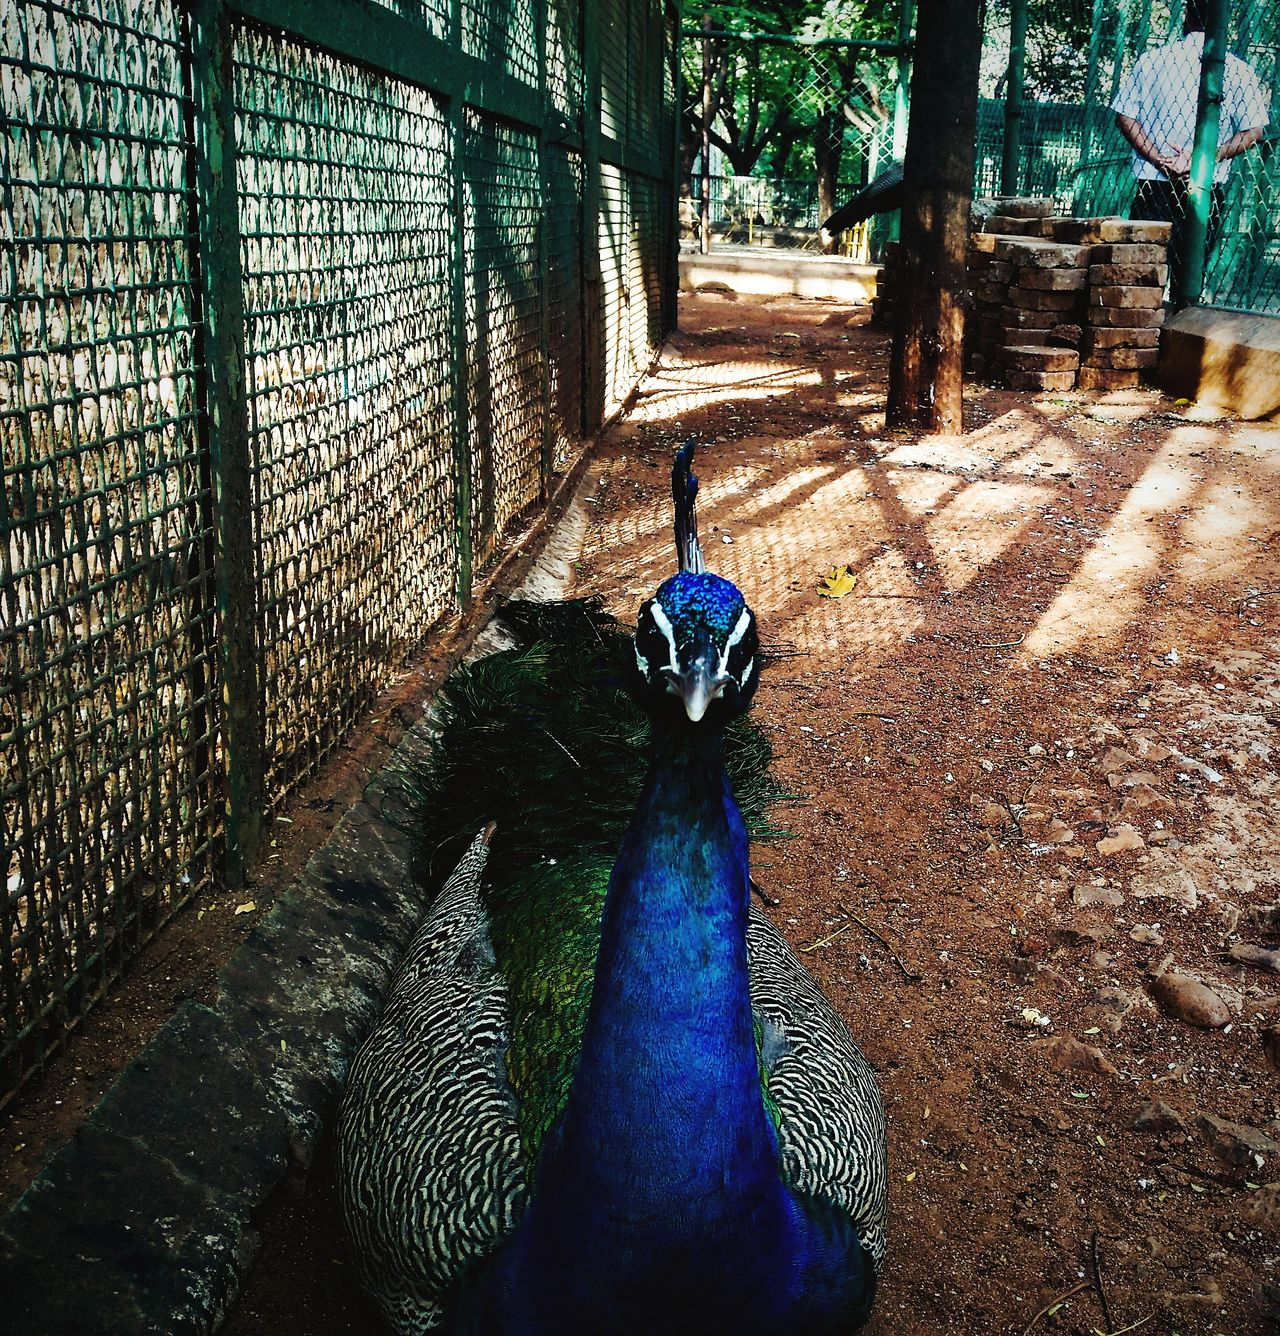 Prison Door Caged Caged Birds Caged Beauty Caged Freedom Peacock Blue Peacock Peacock Feather